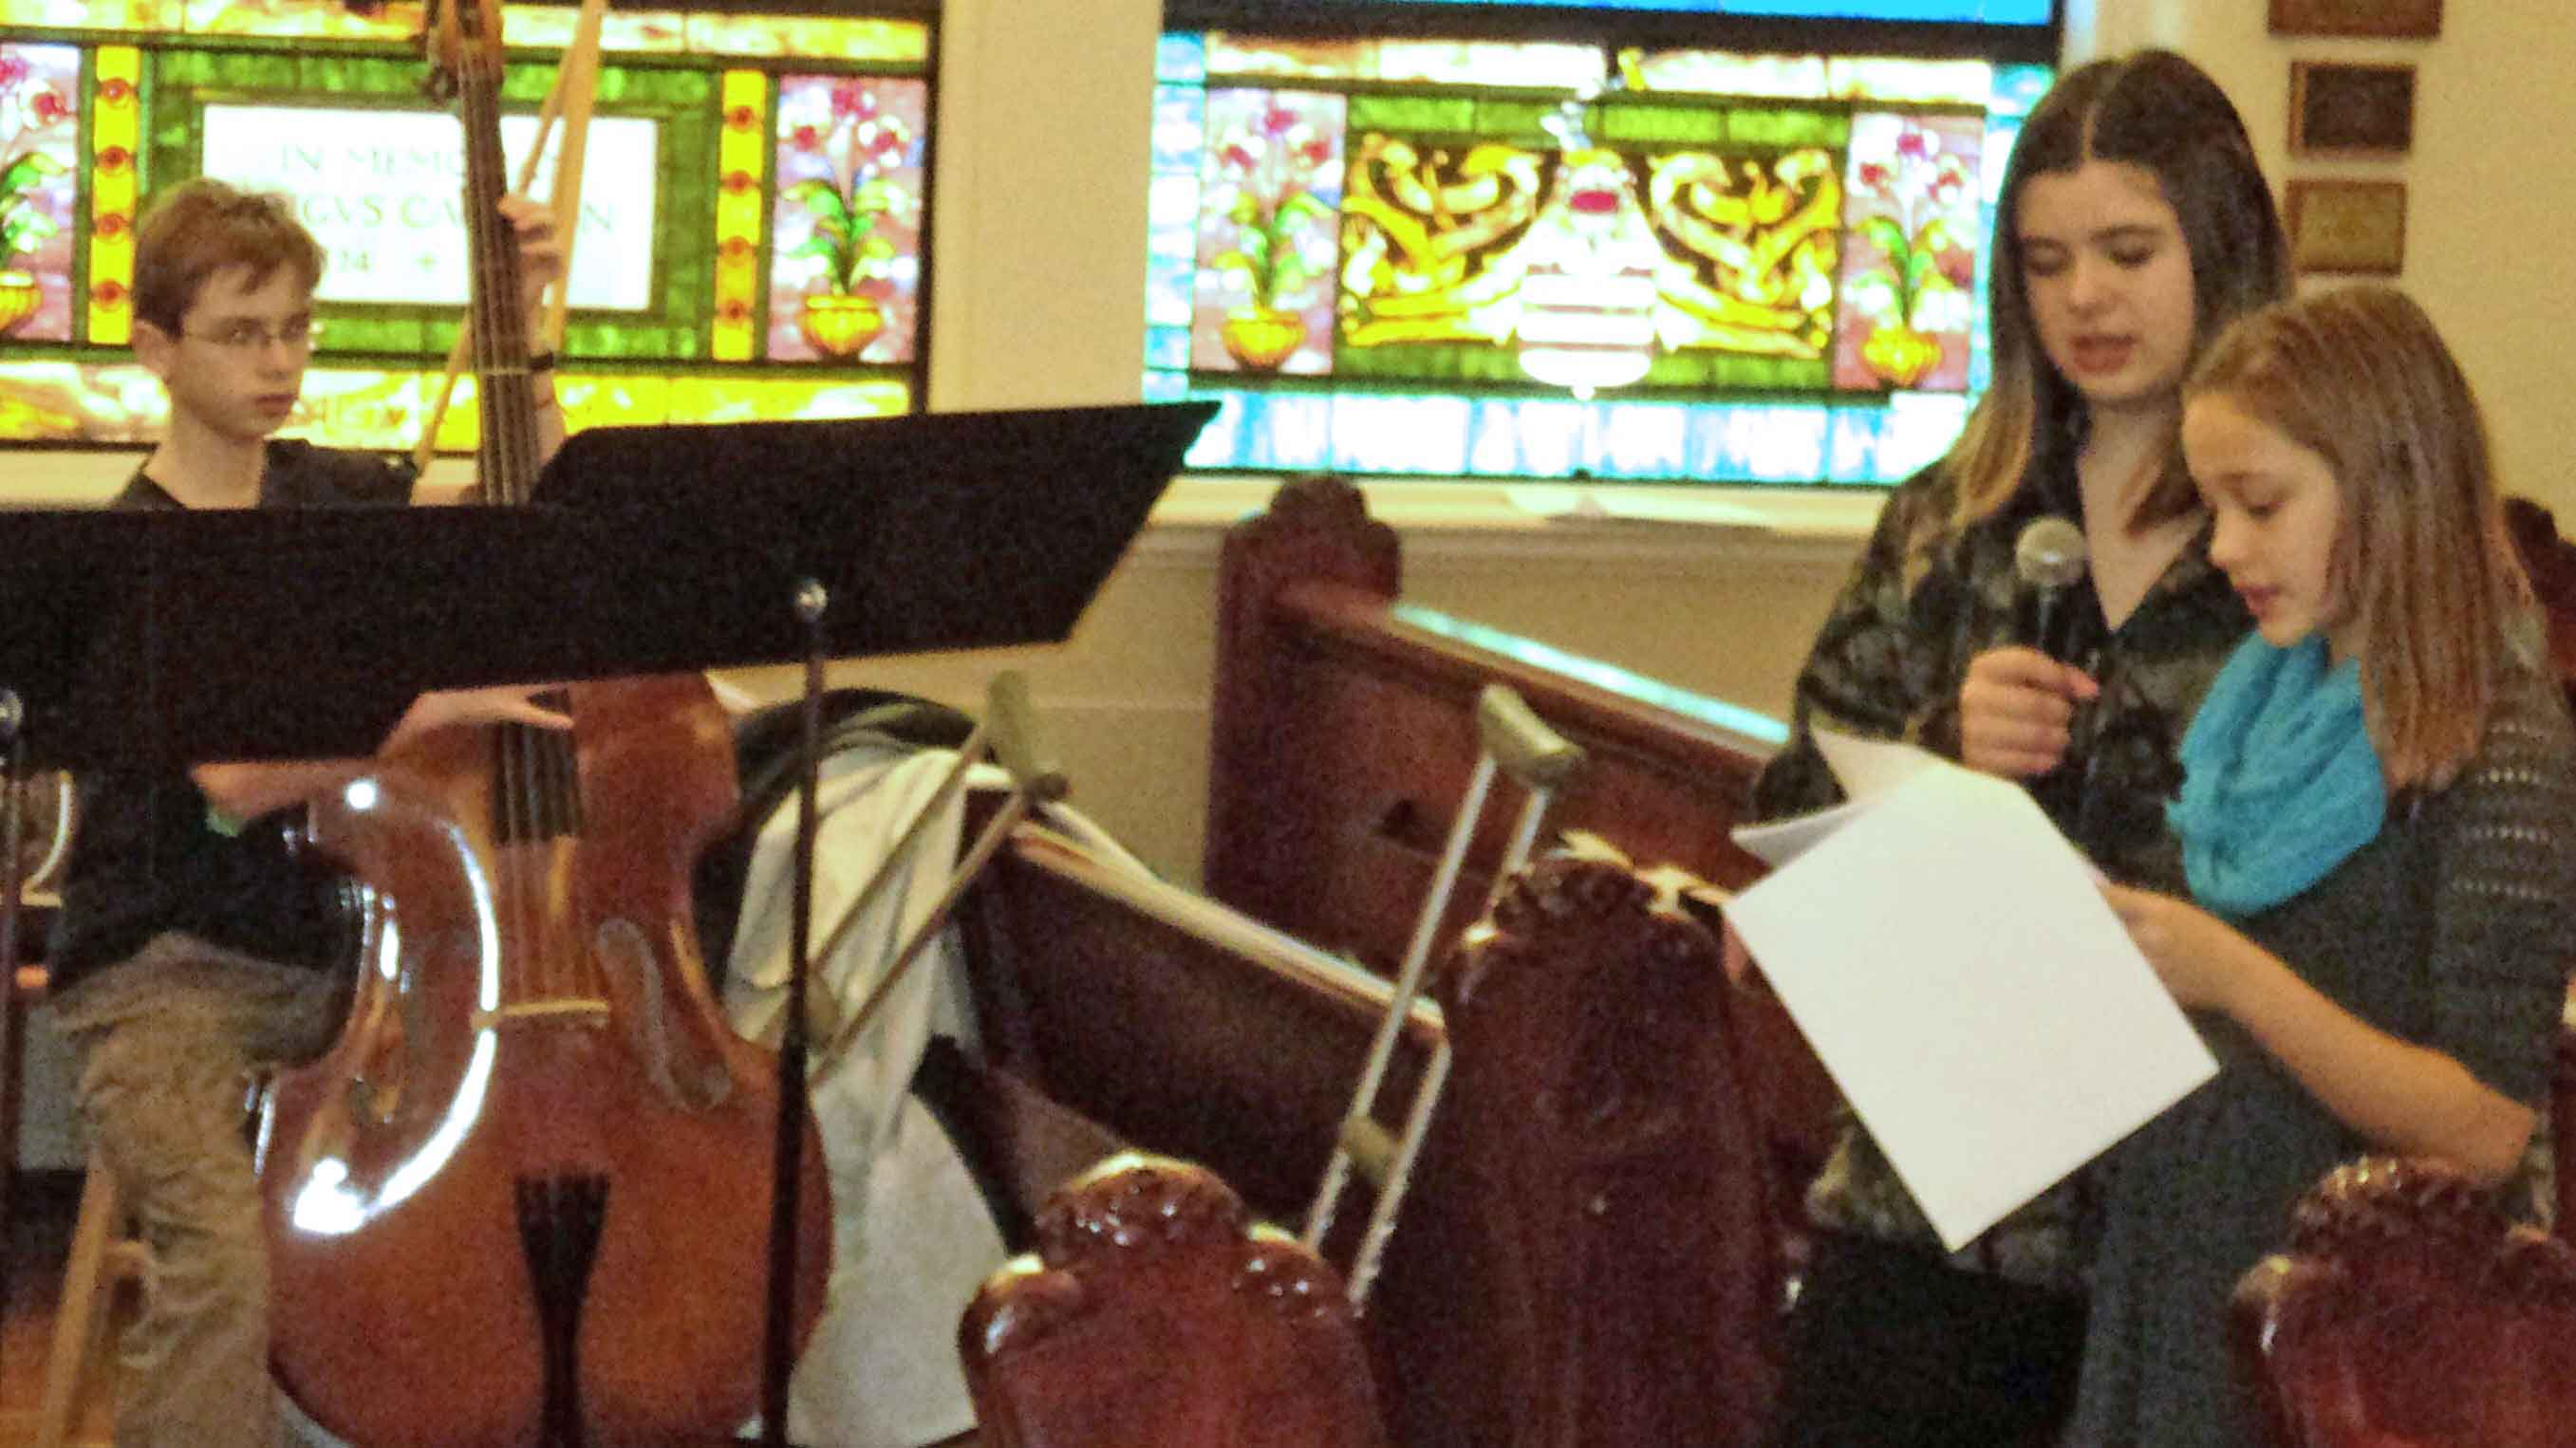 Christ Episcopal Church Teens Rehearse for Mary Did You Know